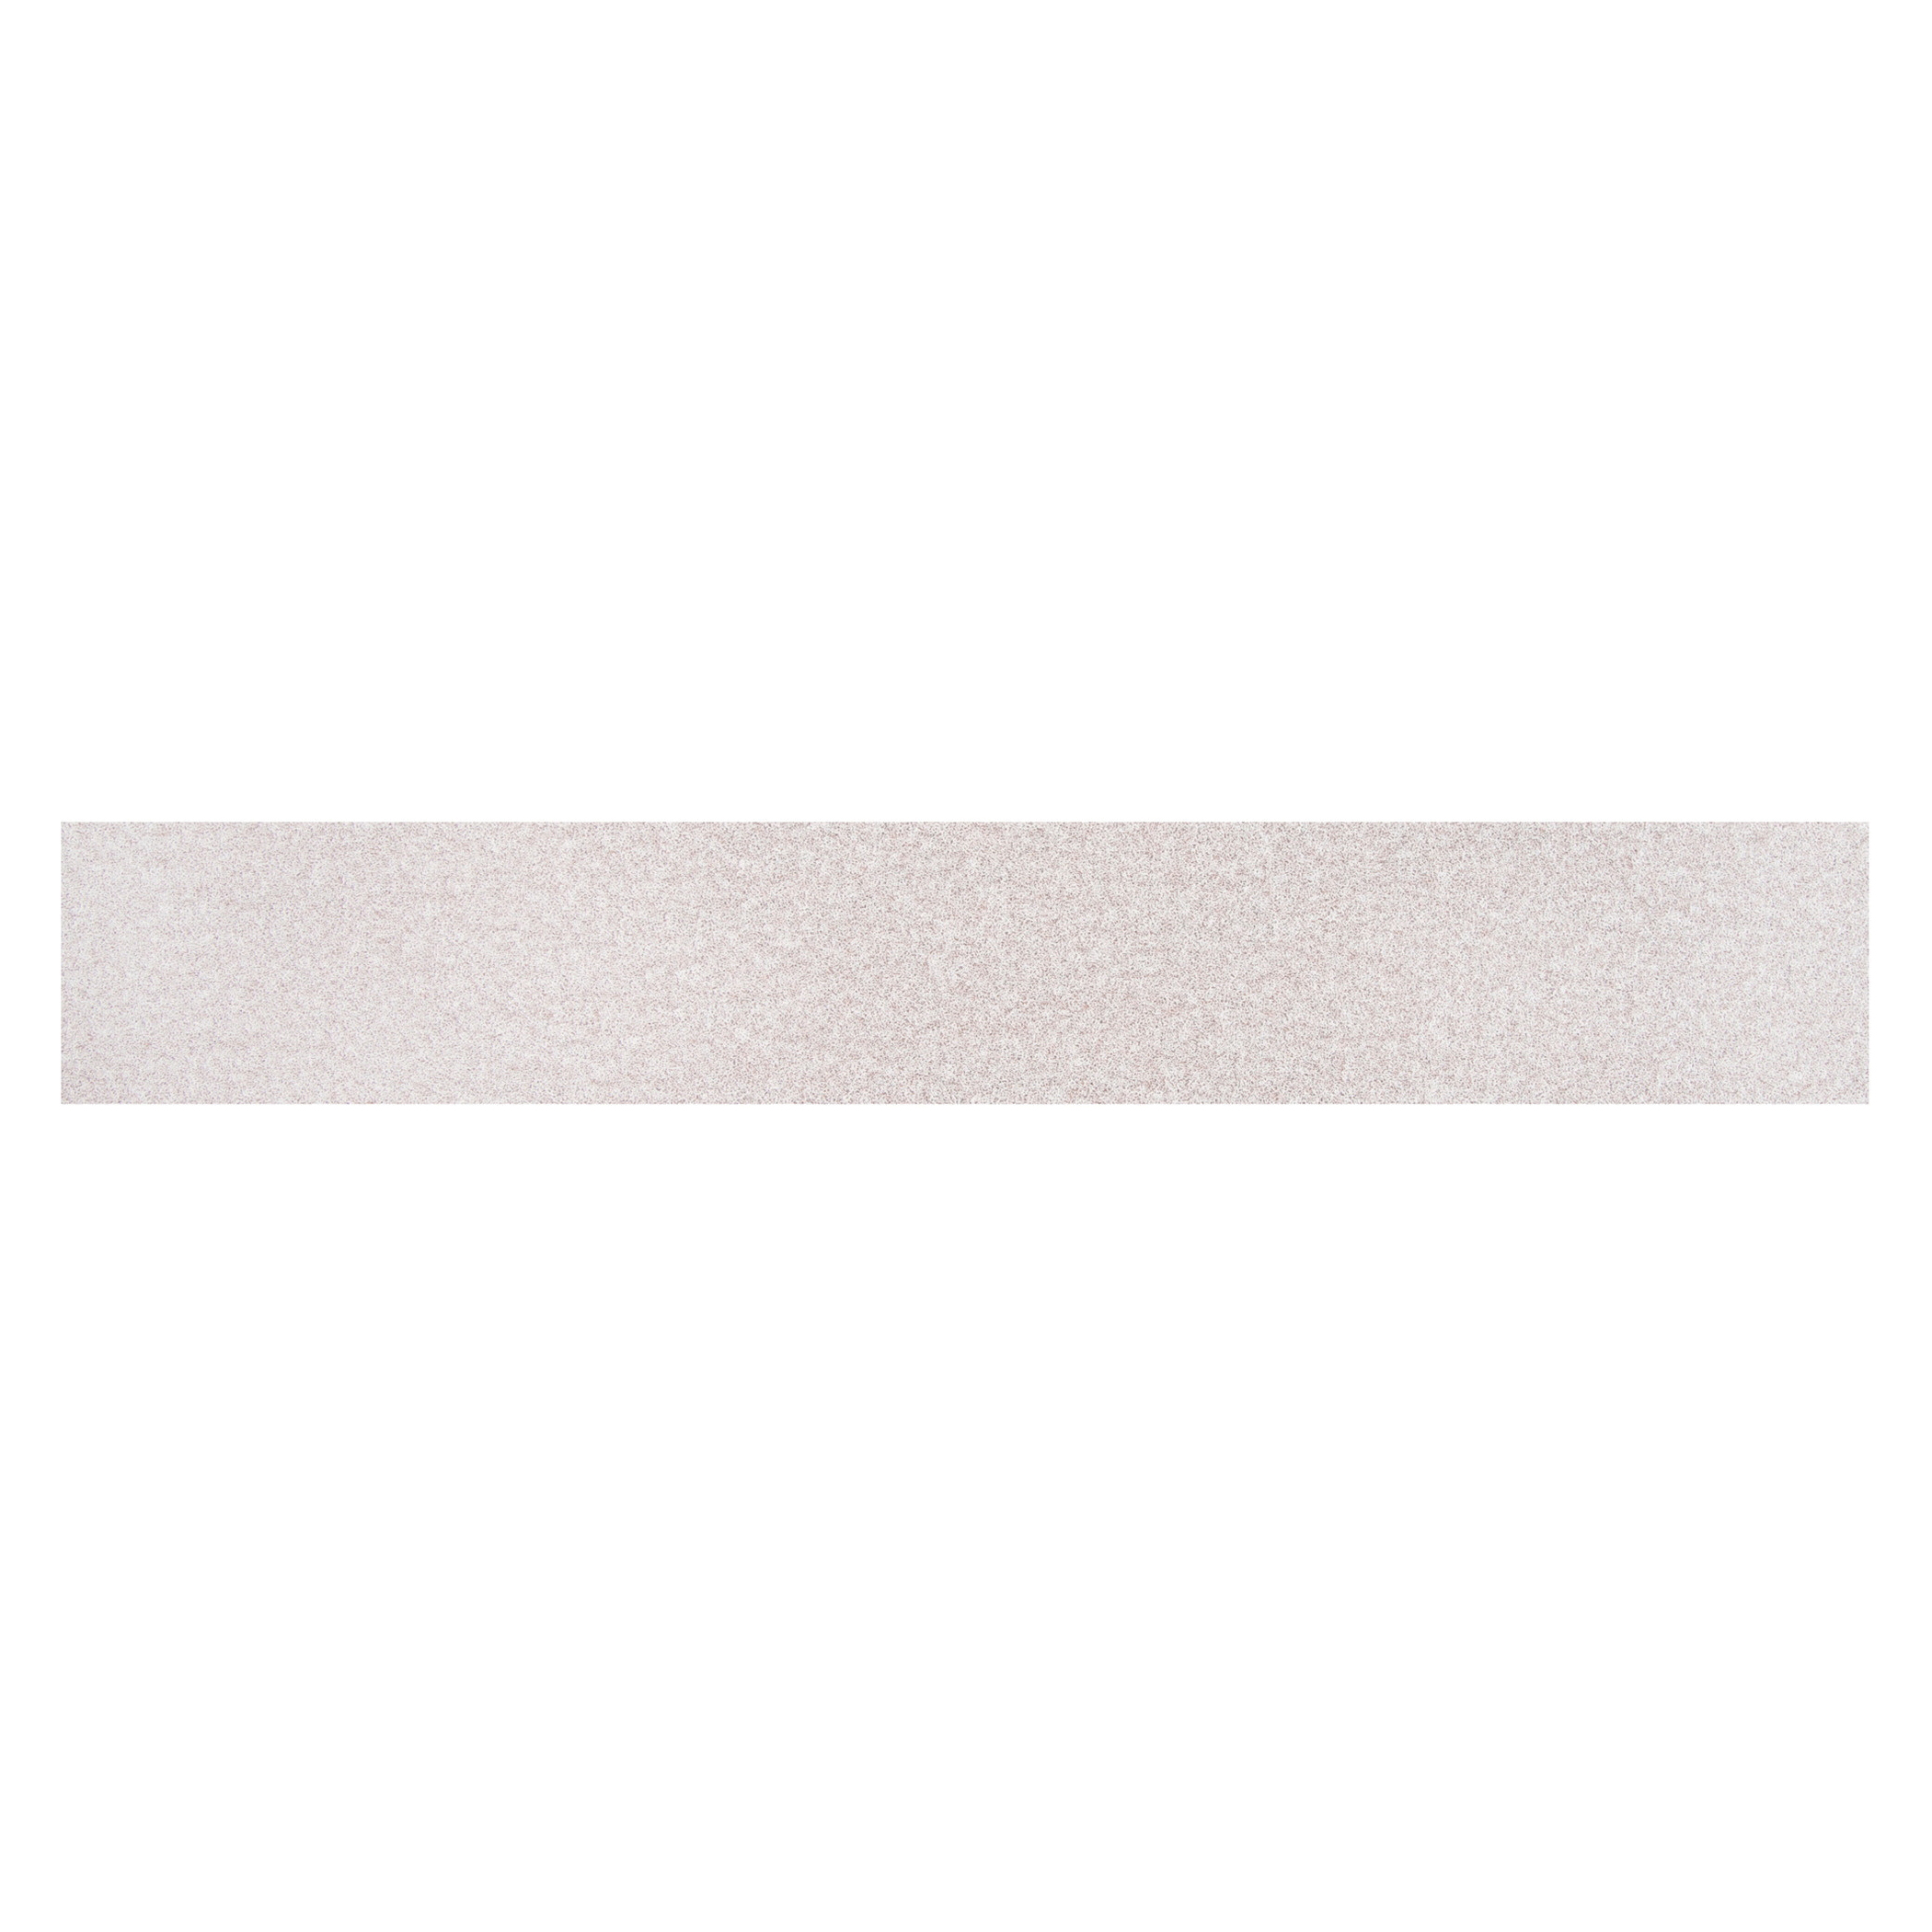 Norton® 66261131645 A275OP Hook and Loop Coated File Strip, 16-1/2 in L x 2-3/4 in W, P100 Grit, Medium Grade, Aluminum Oxide Abrasive, Anti-Loading Paper Backing